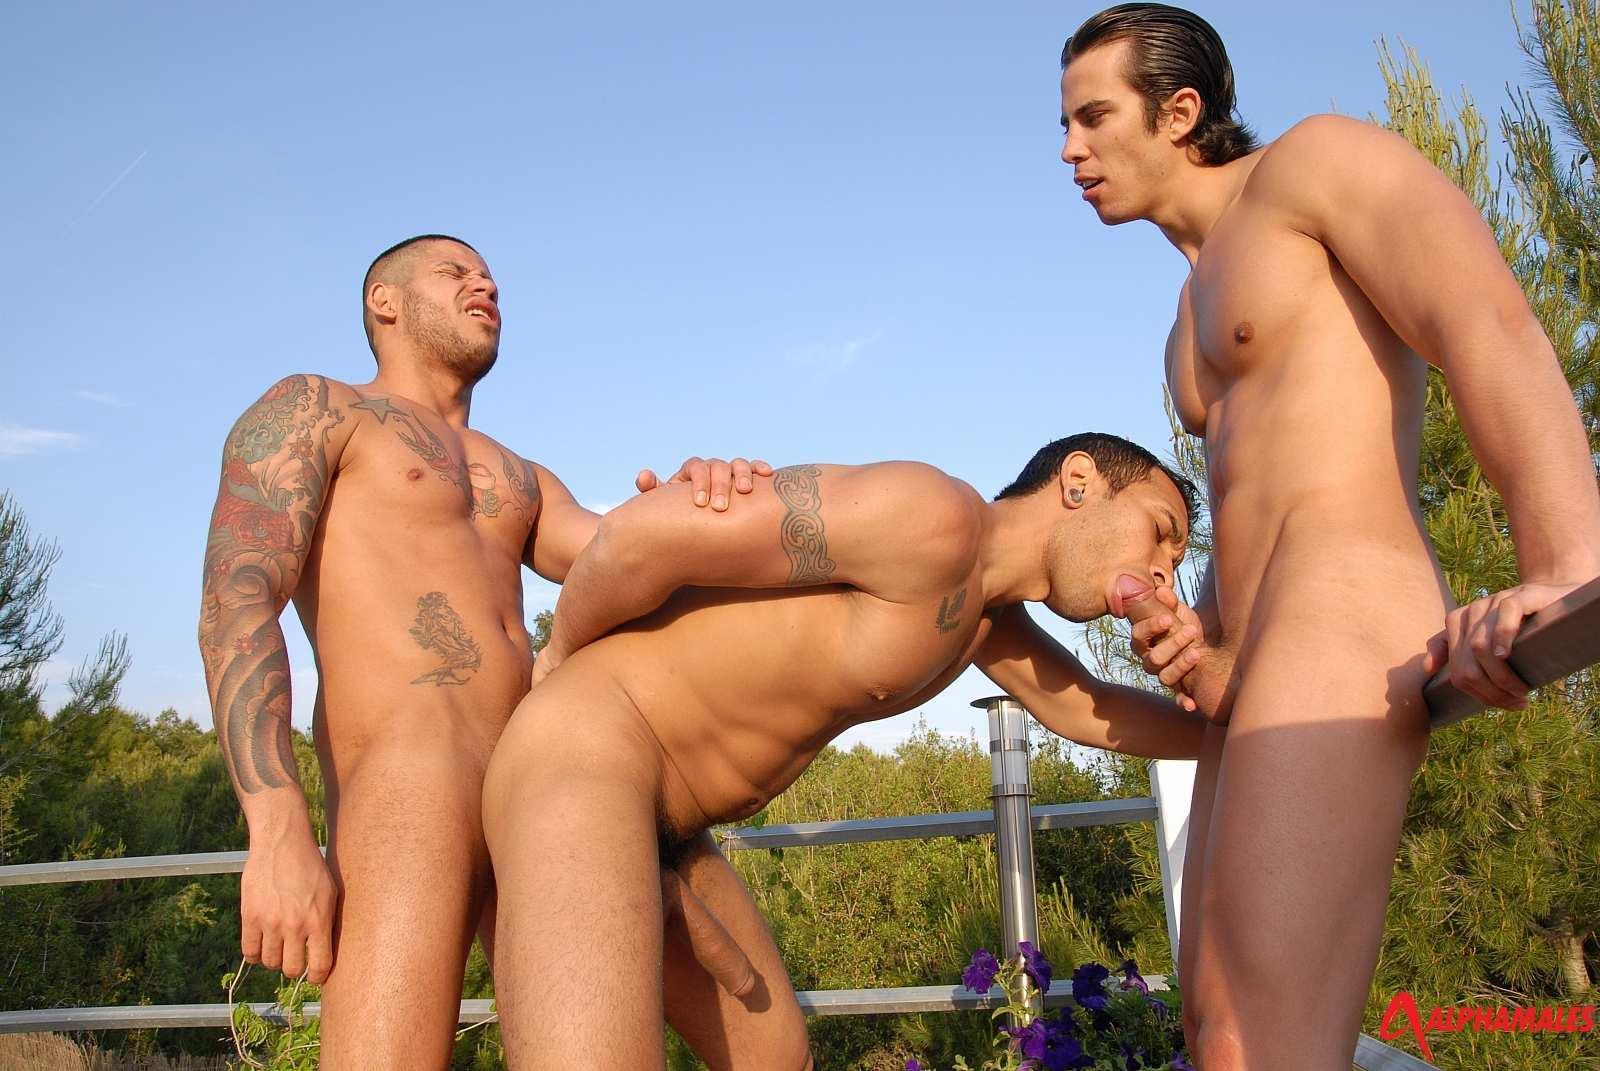 Alpha Males Lucio Saints and Mailkel Cash and Fabio Costa Lucio Saints Getting Bottomed Amateur Gay Porn 09 RARE: Lucio Saints Bottoms And Receives A Cum Facial